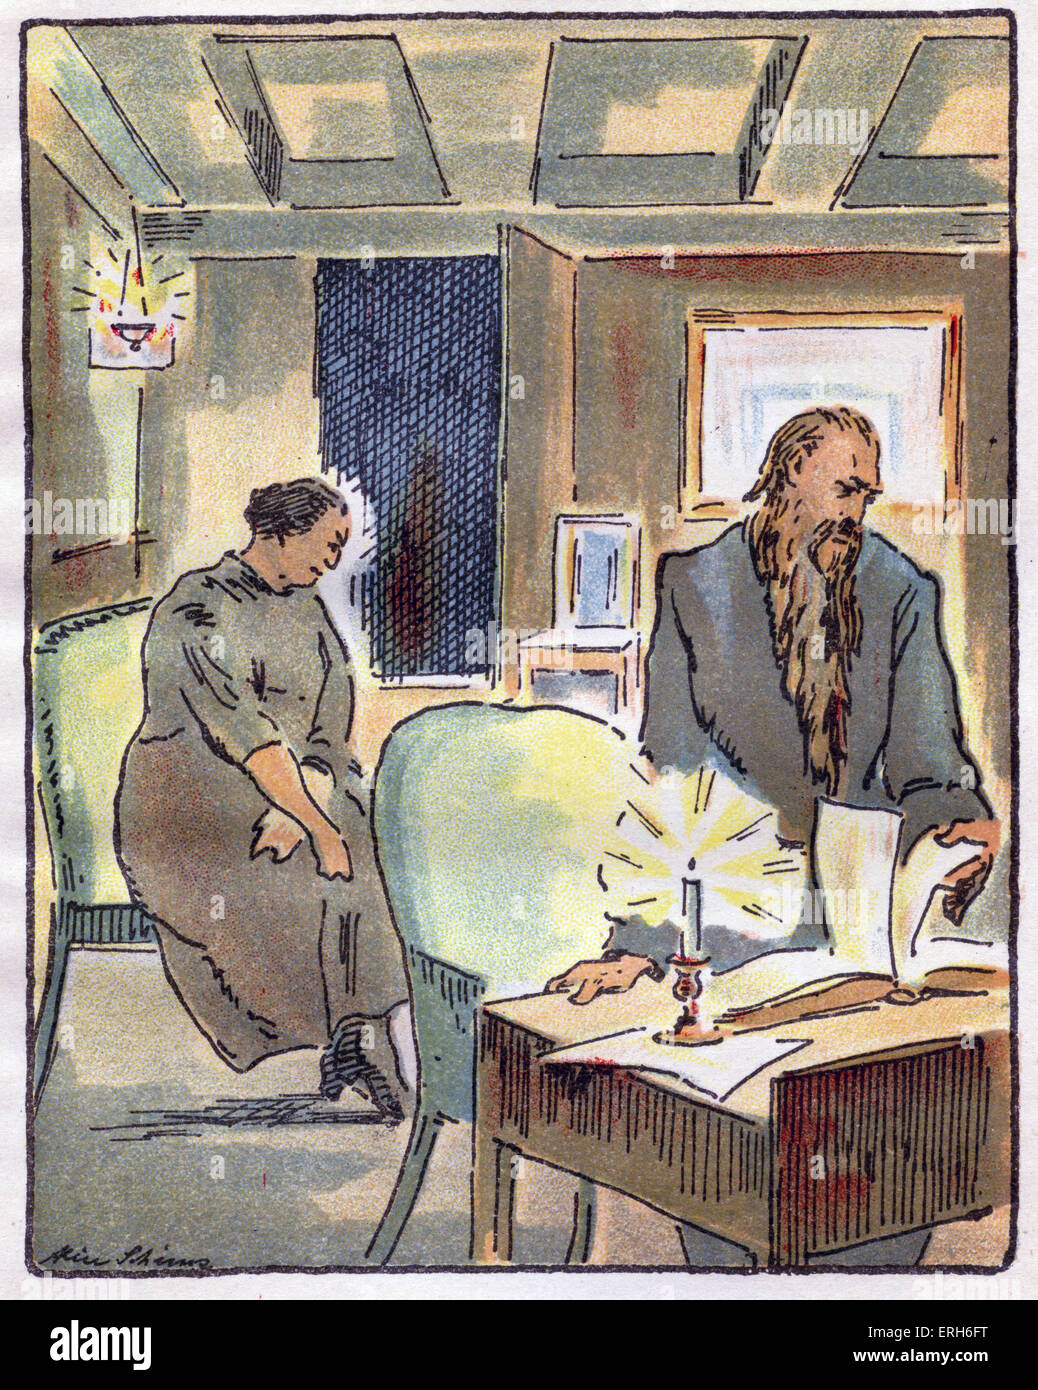 Das Schweigen (Silence) - novella by Leonid Andreyev, c. 1924.  Illustrated with lithographs by Alice Schimz. In - Stock Image